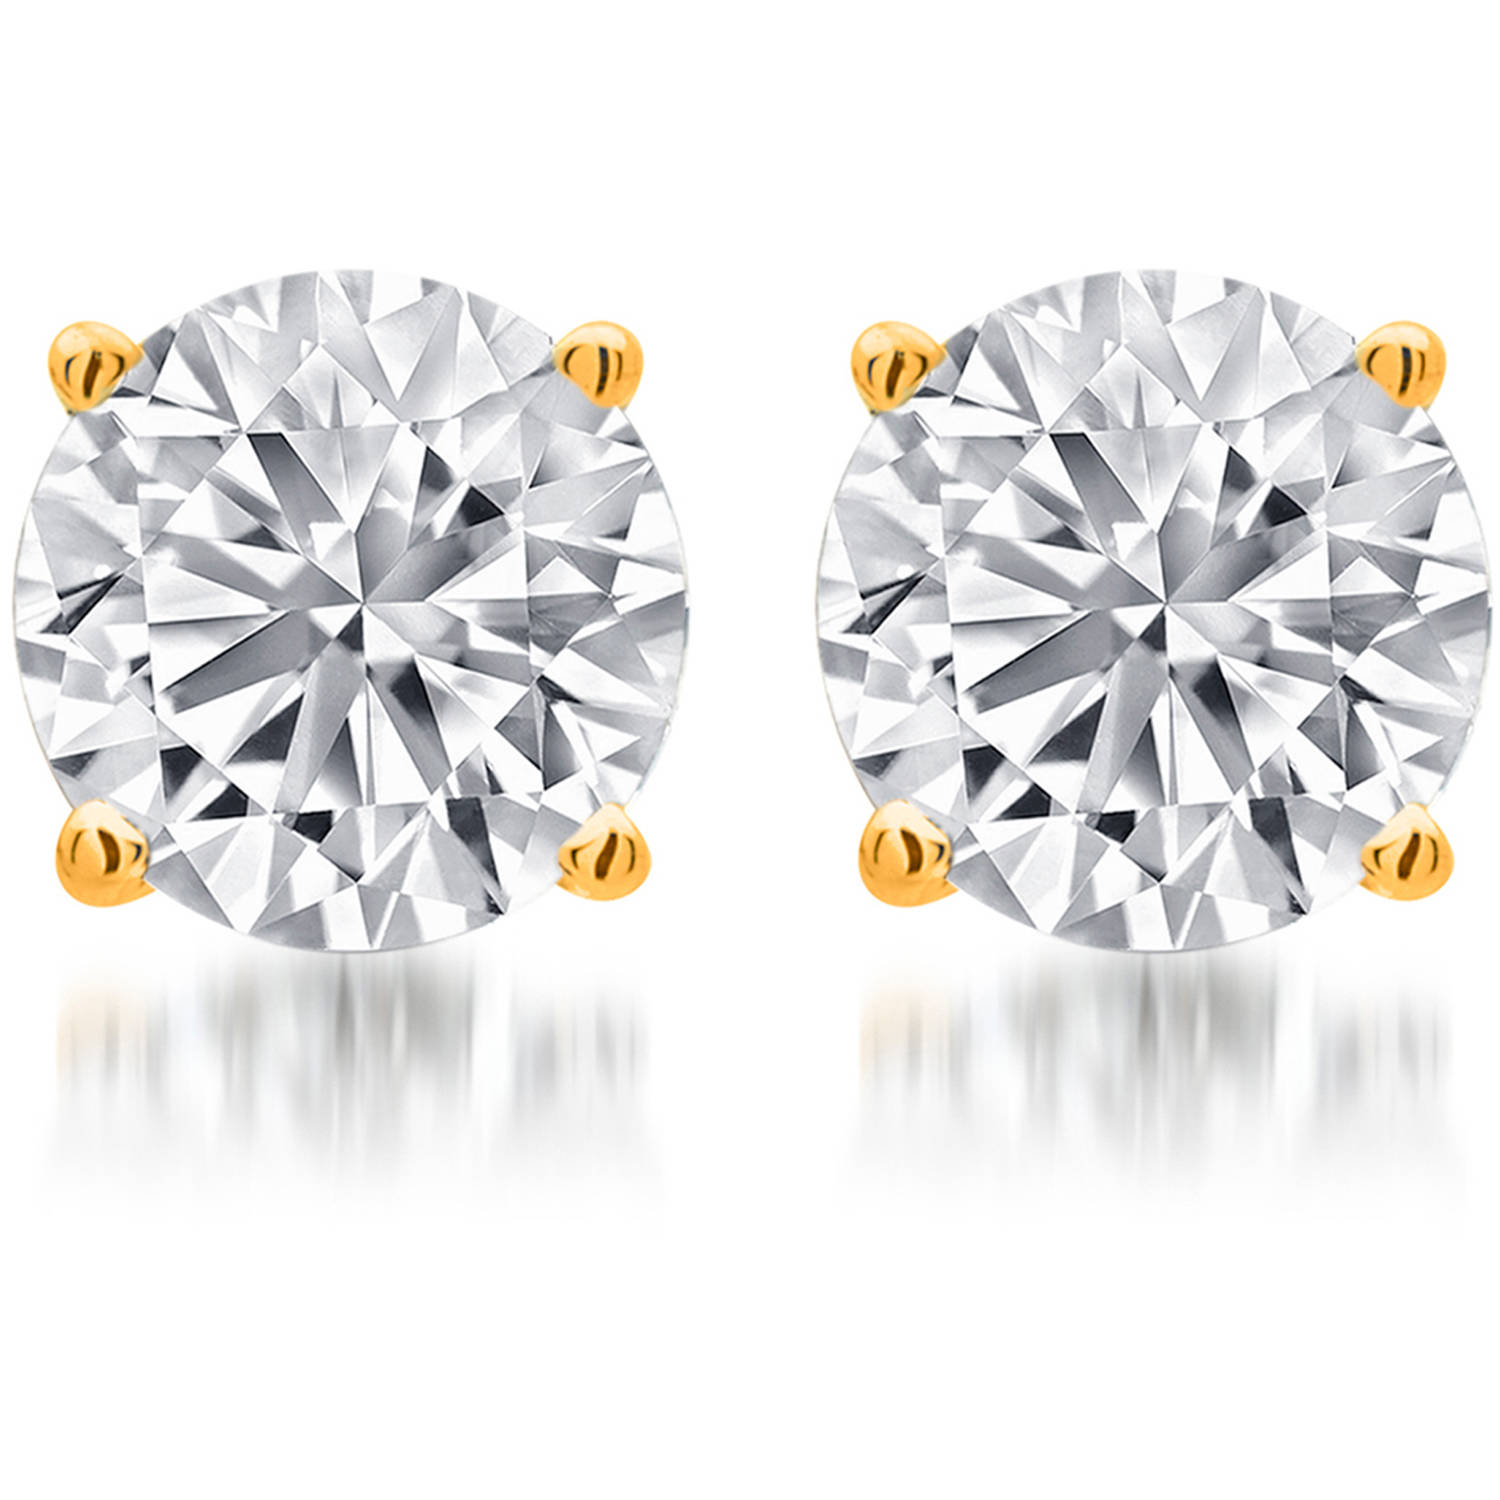 1/4 Carat T.W. Round White Diamond Yellow Gold over Sterling Silver Stud Earrings